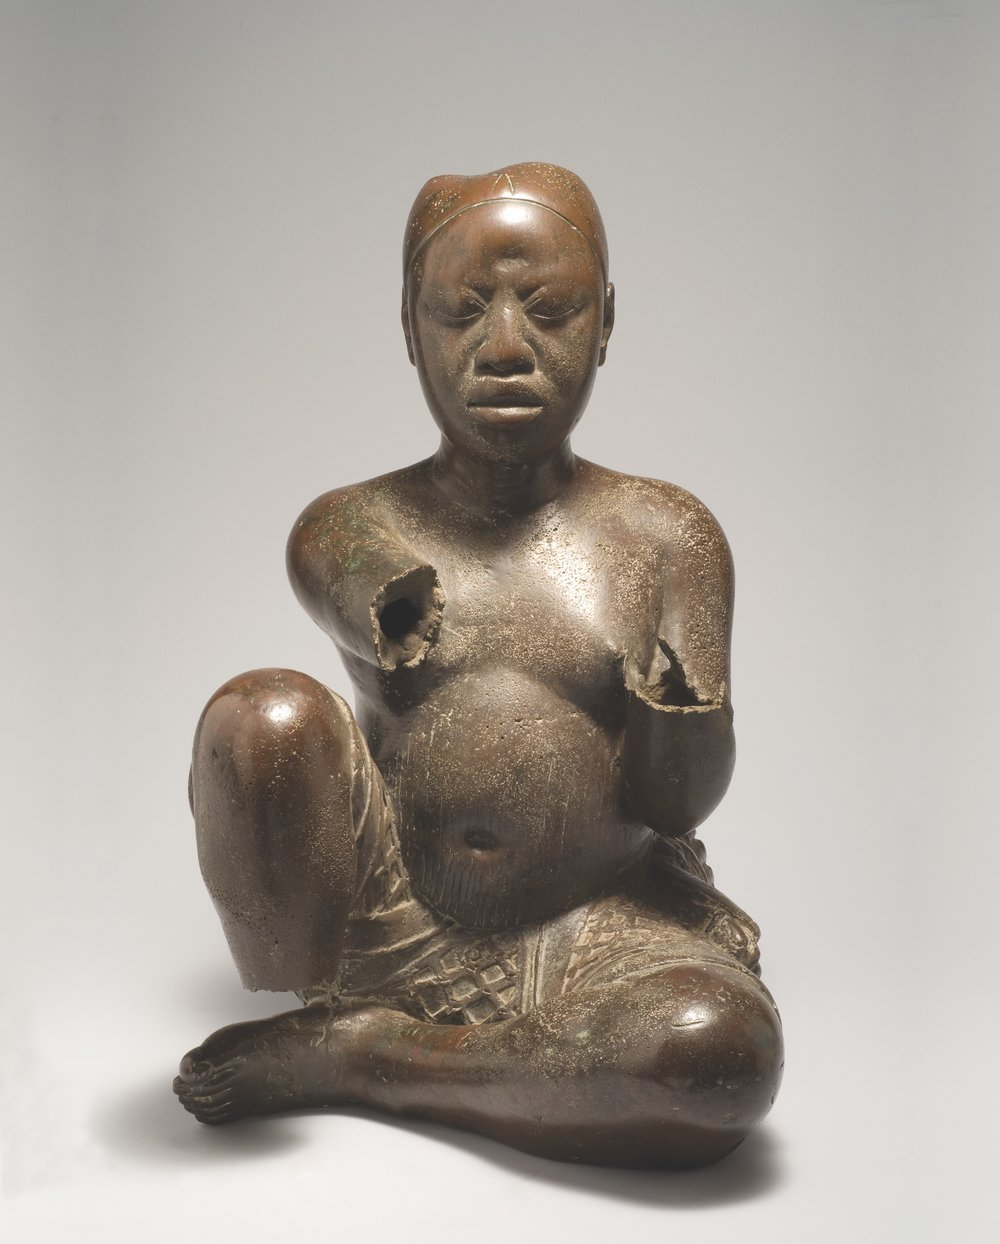 Seated Figure, Possibly Ife, Tada Nigeria, Late 13th-14th century, Copper with traces of arsenic, lead, and tin, H. 54 cm, Nigerian National Commission for Museums and Monuments, 79.R18, Image courtesy of National Commission for Museums and Monuments, Abuja, Nigeria.